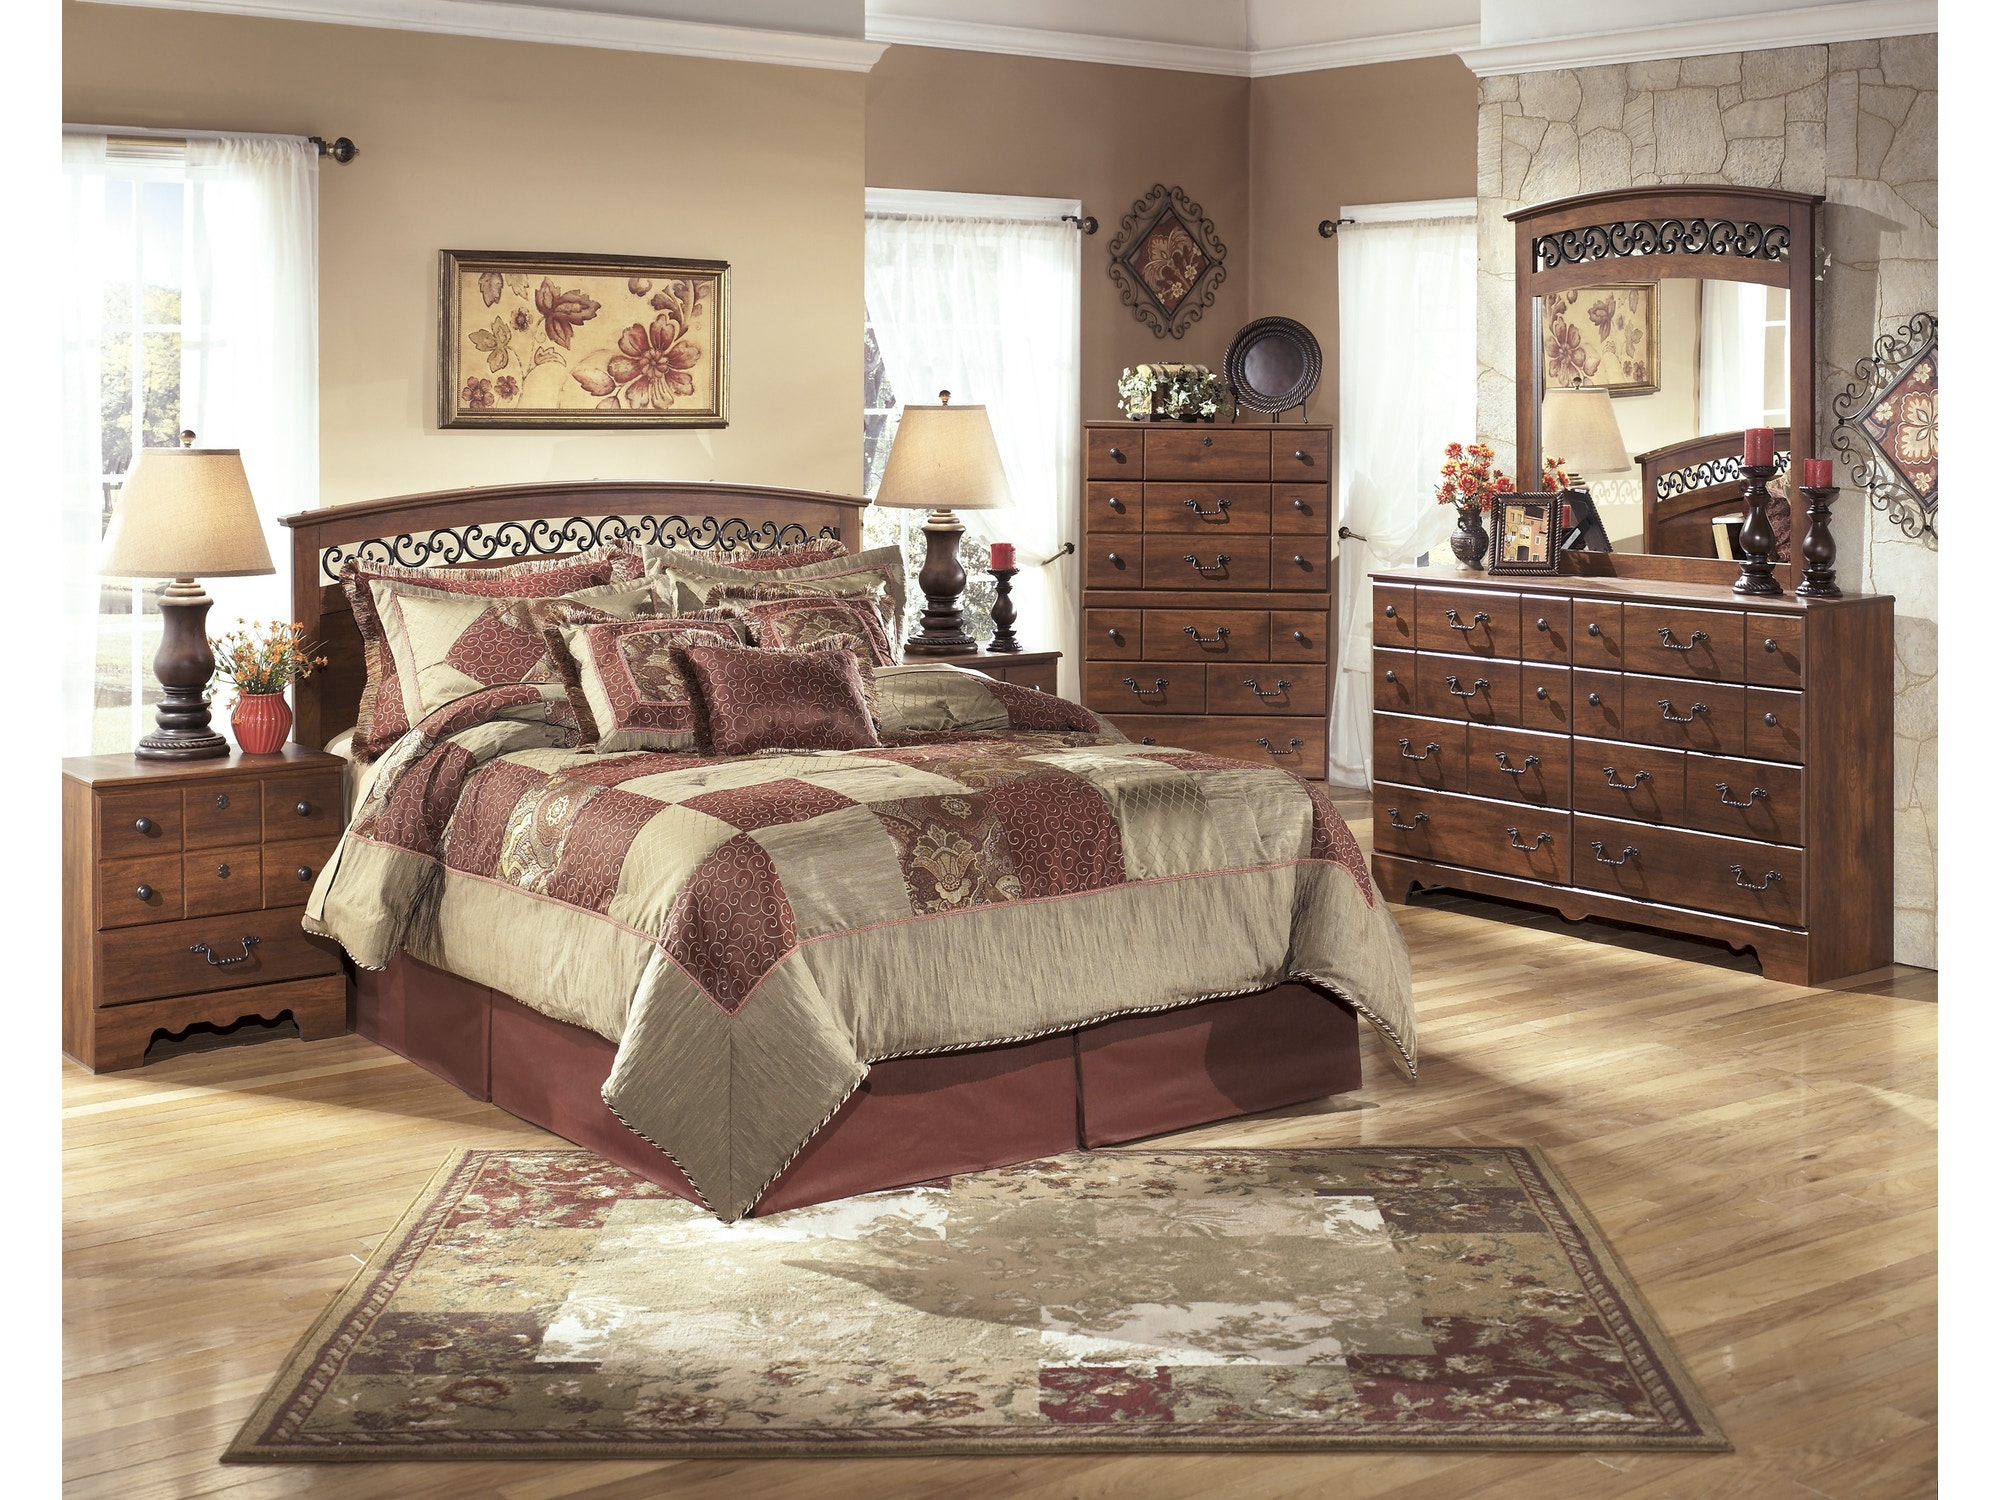 Timberline Bedroom Group - Full/Queen Z82212